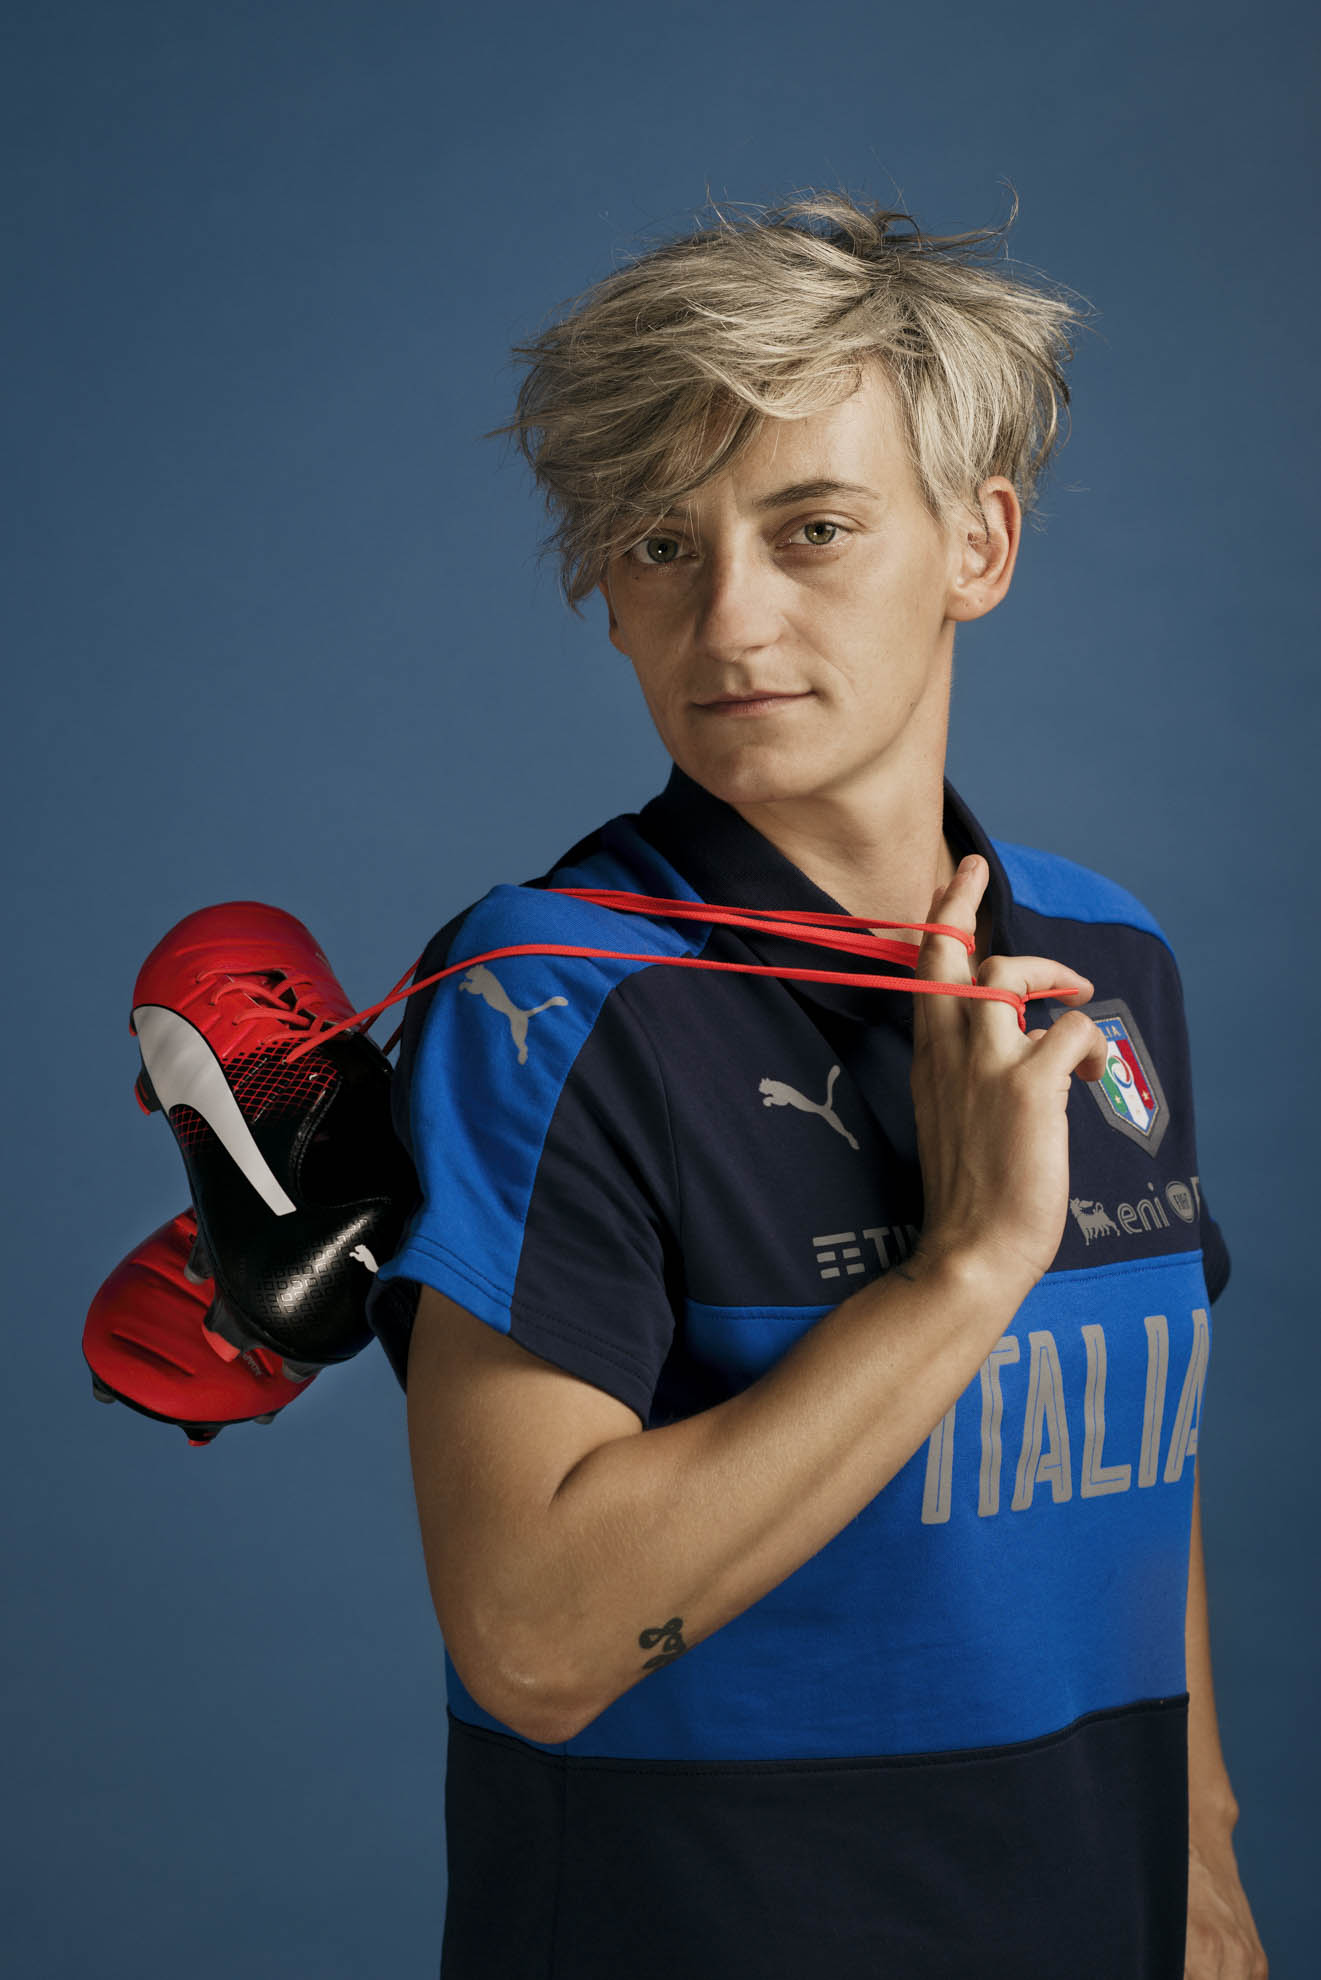 Coverciano, 2017. Melania Gabbiadini, capitano della nazionale femminile di calcio italiana. Coverciano, 2017. Melania Gabbiadini, captain of  Italy women's national team.